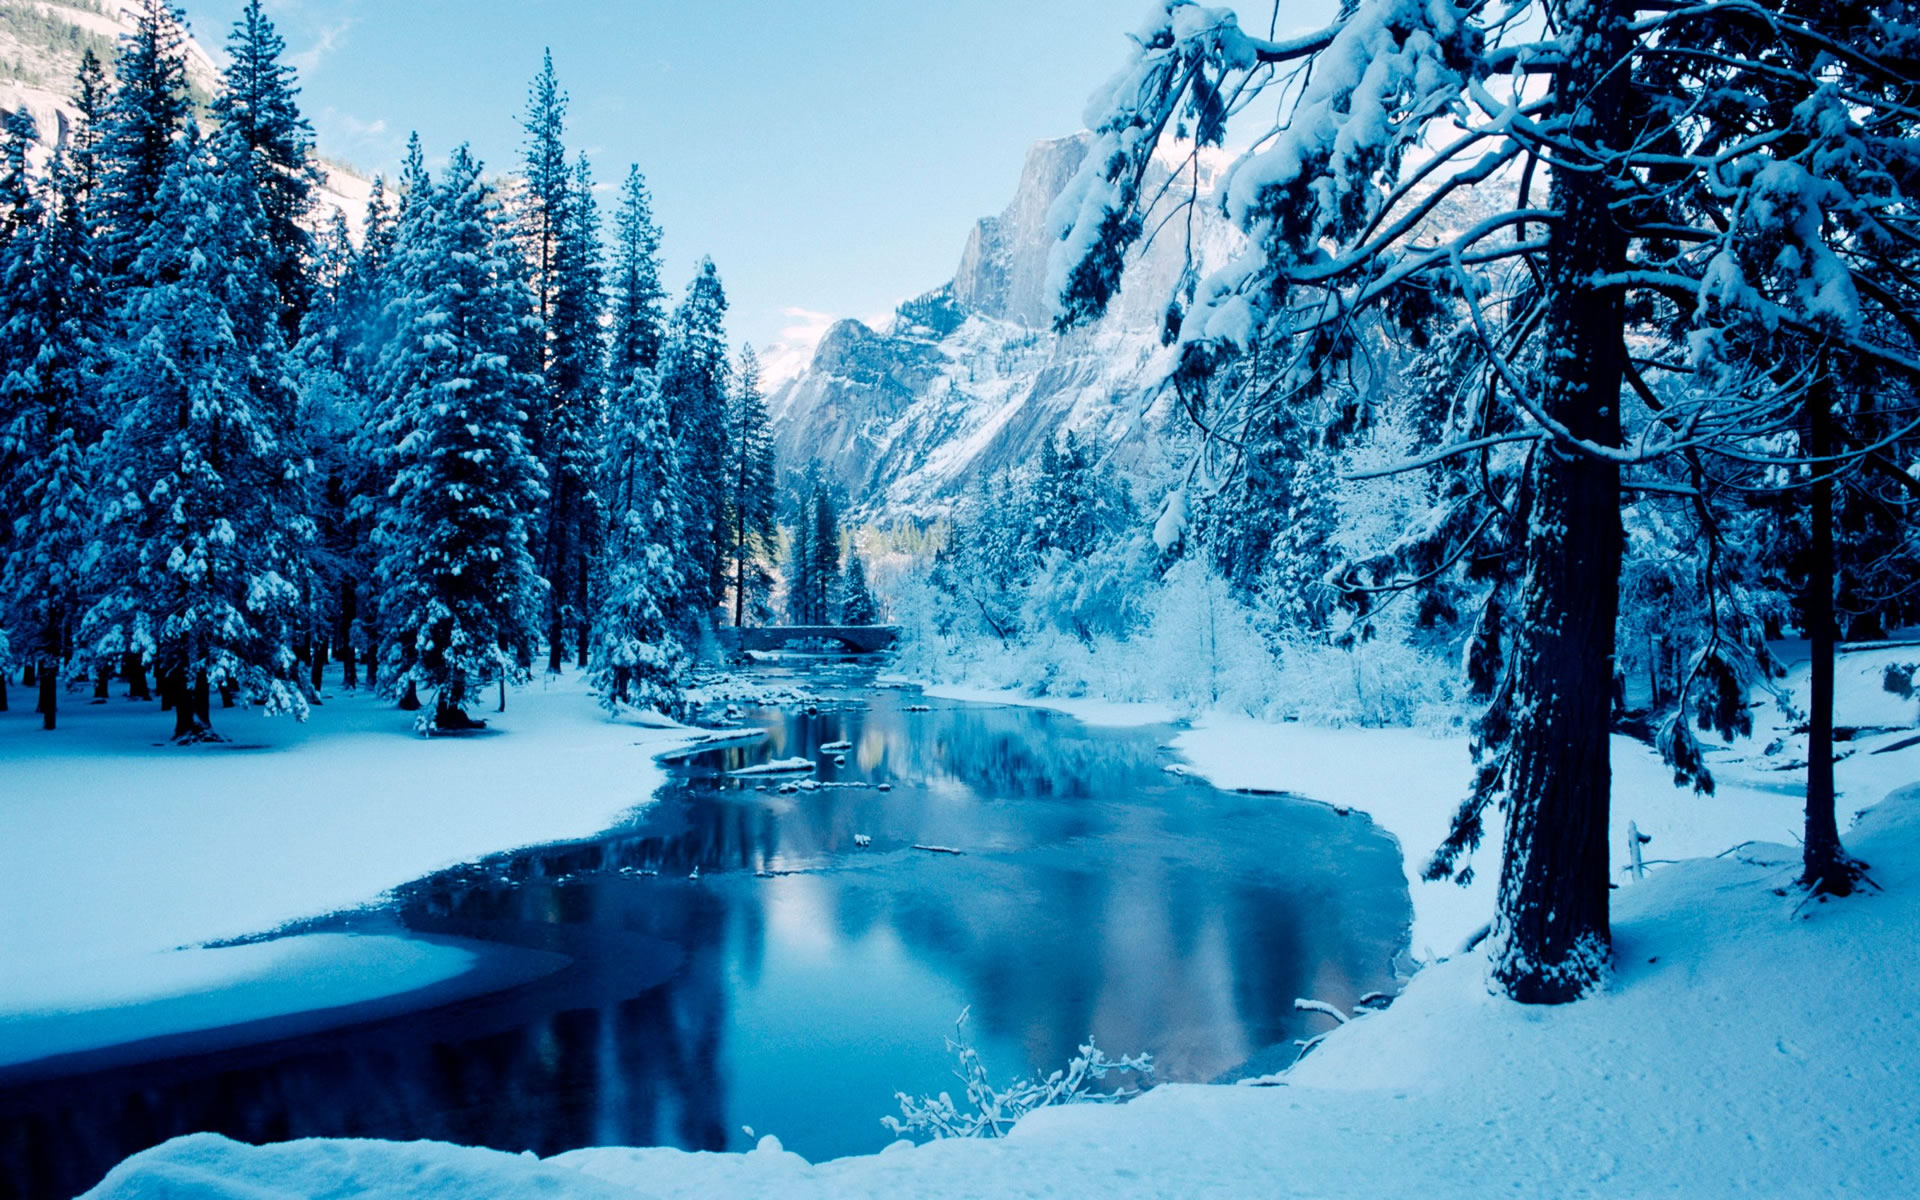 WWW Winter Wallpaper Com